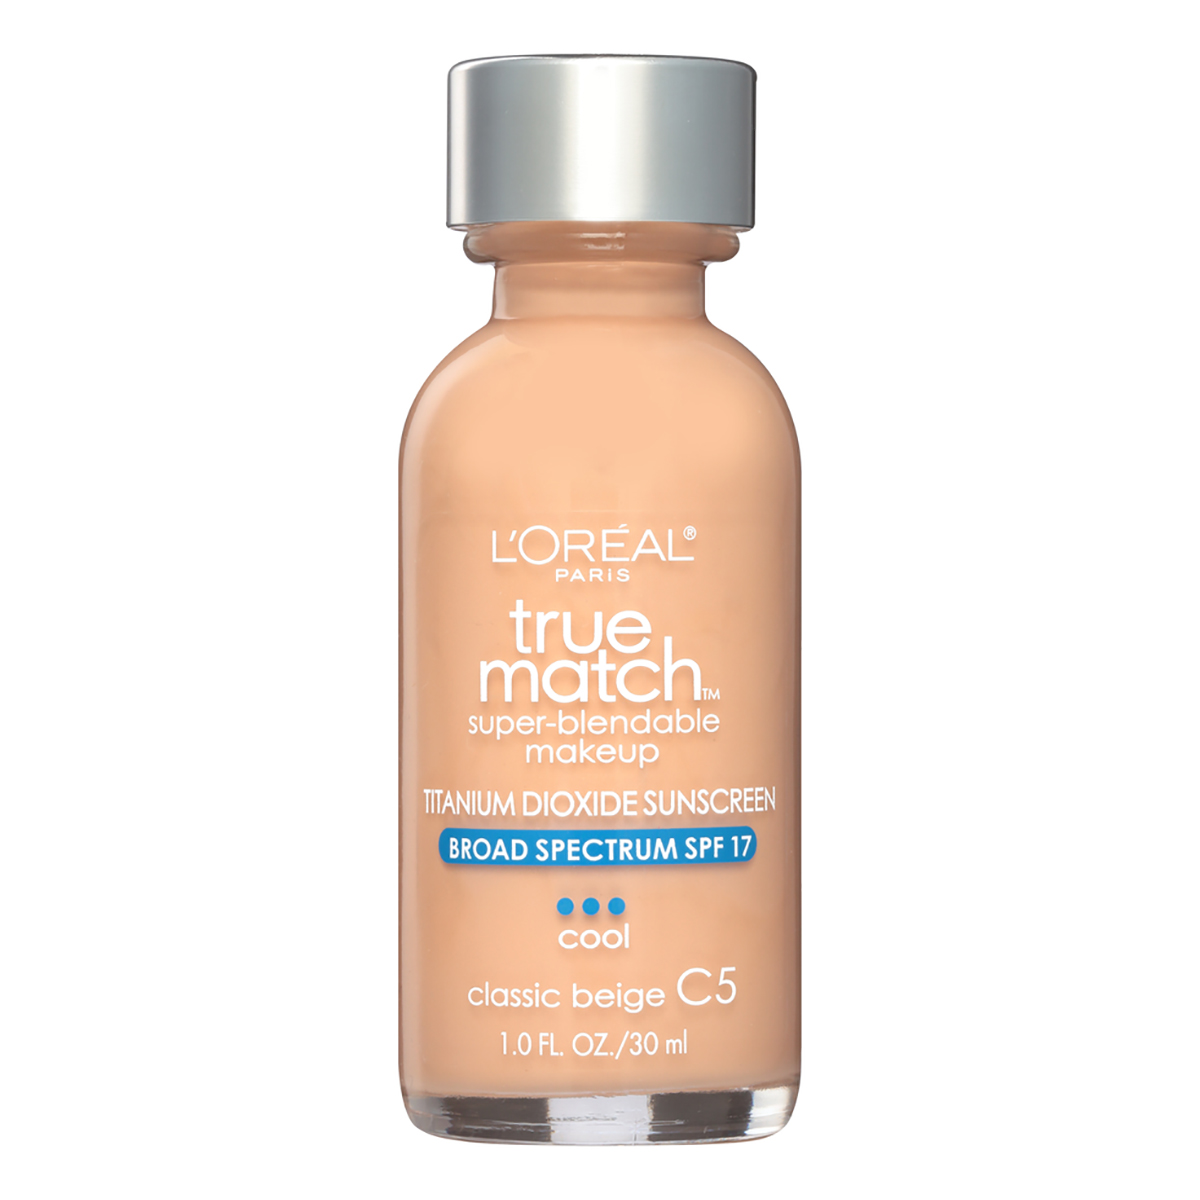 L'Oreal Paris True Match Super-Blendable Foundation Makeup